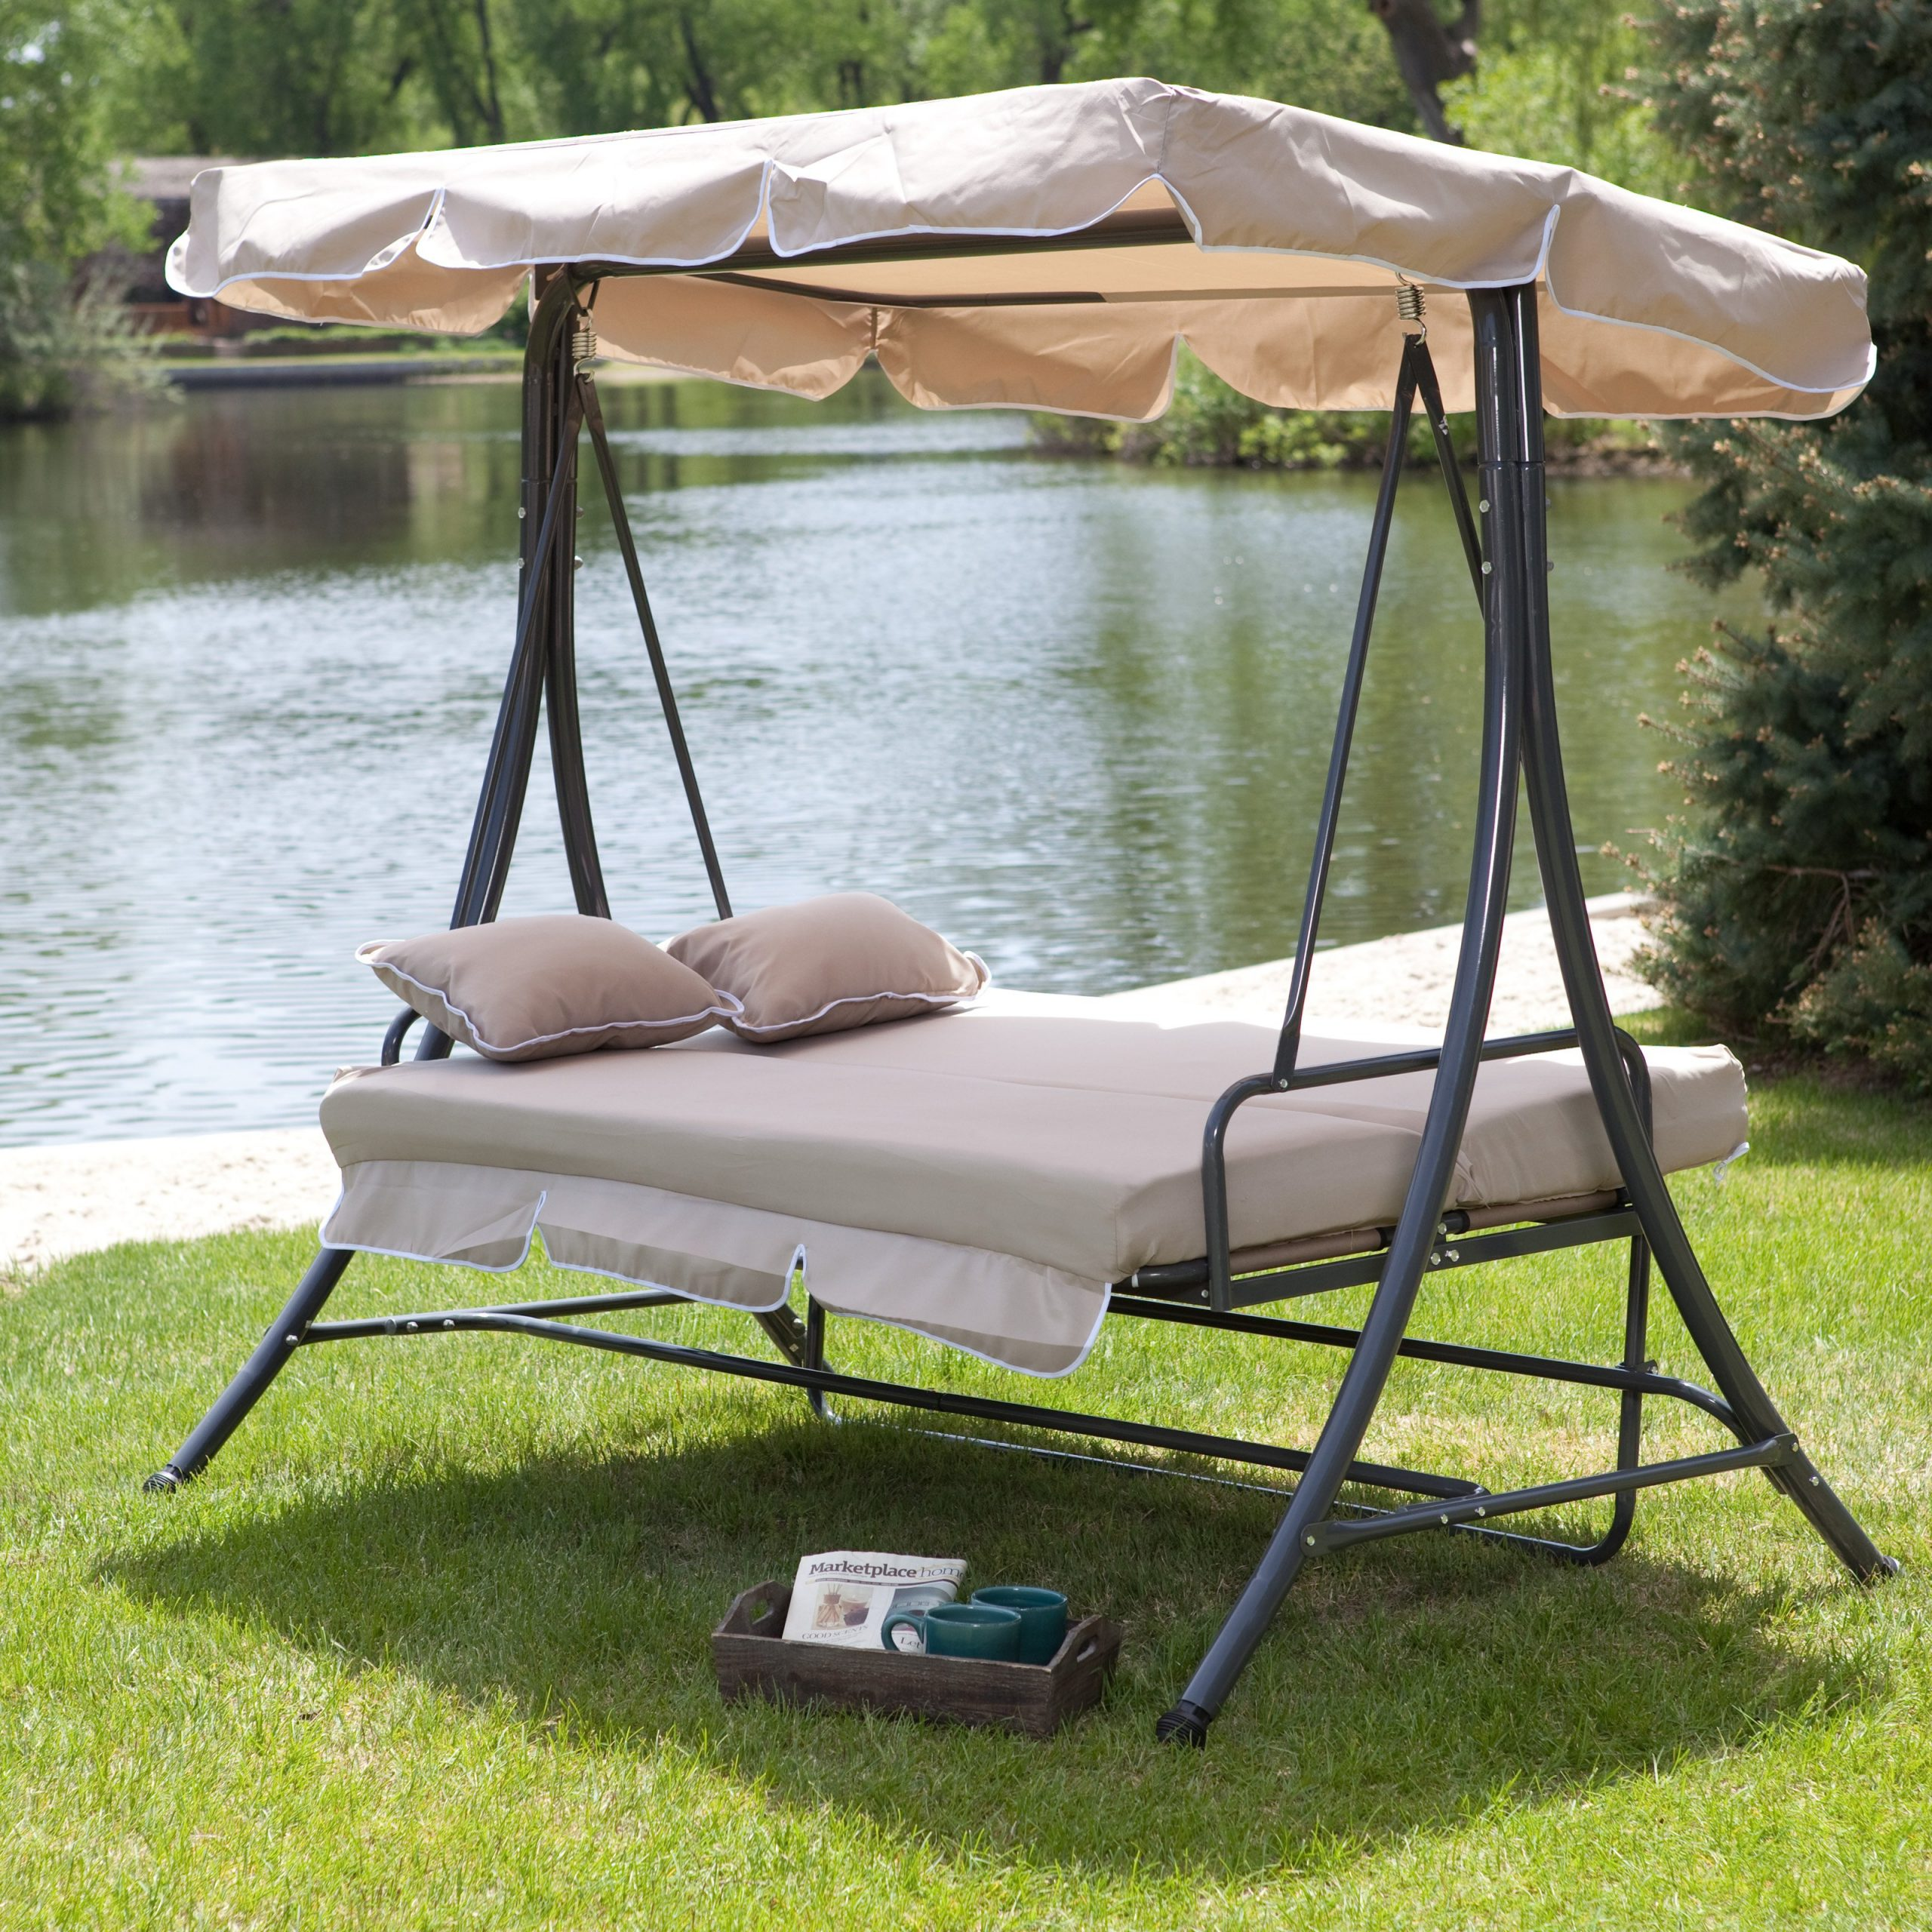 Hammock Patio Backyard Outdoor Swing Hanging Chair With Two For Patio Porch Swings With Stand (View 20 of 25)